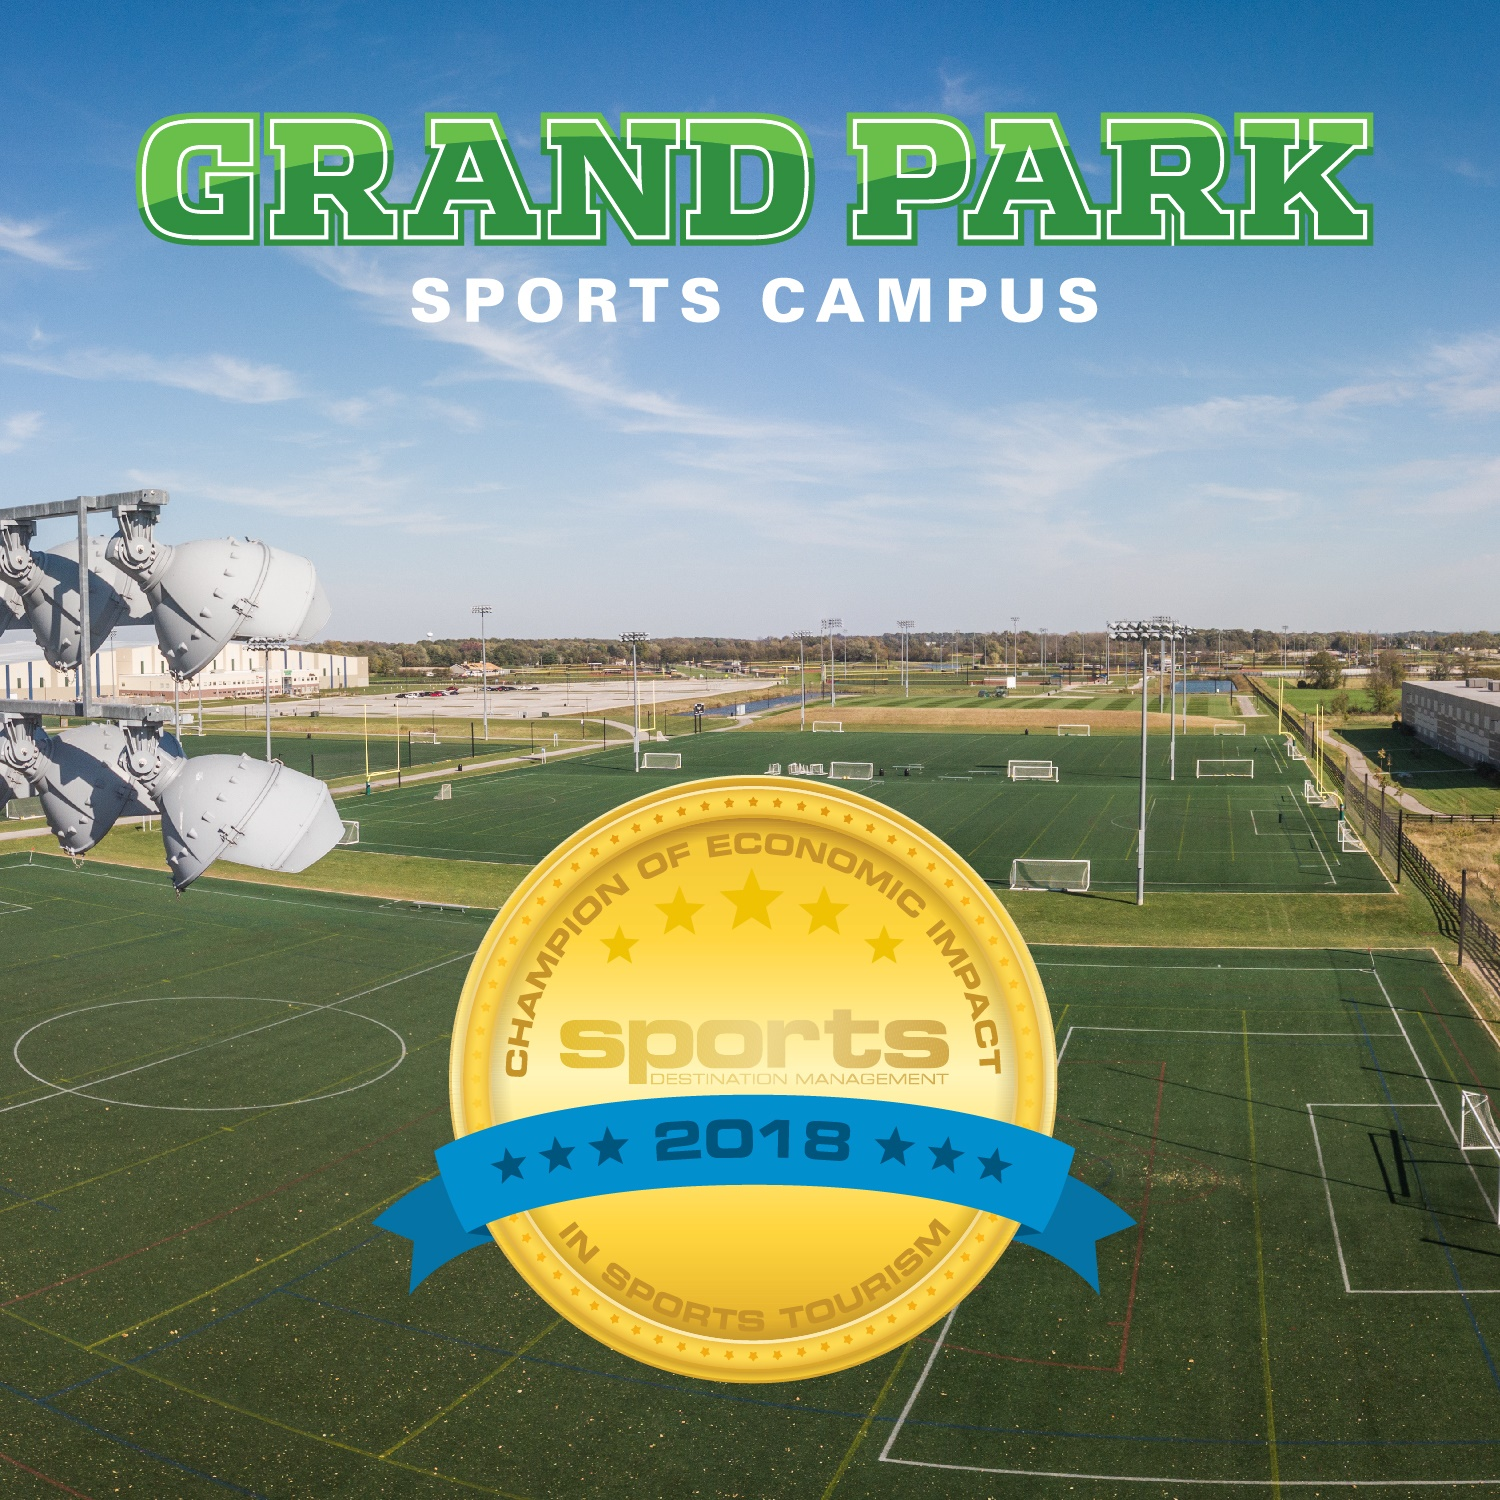 Photo for: PRESS RELEASE: Grand Park Event Receives Economic Impact Award in Sports Tourism